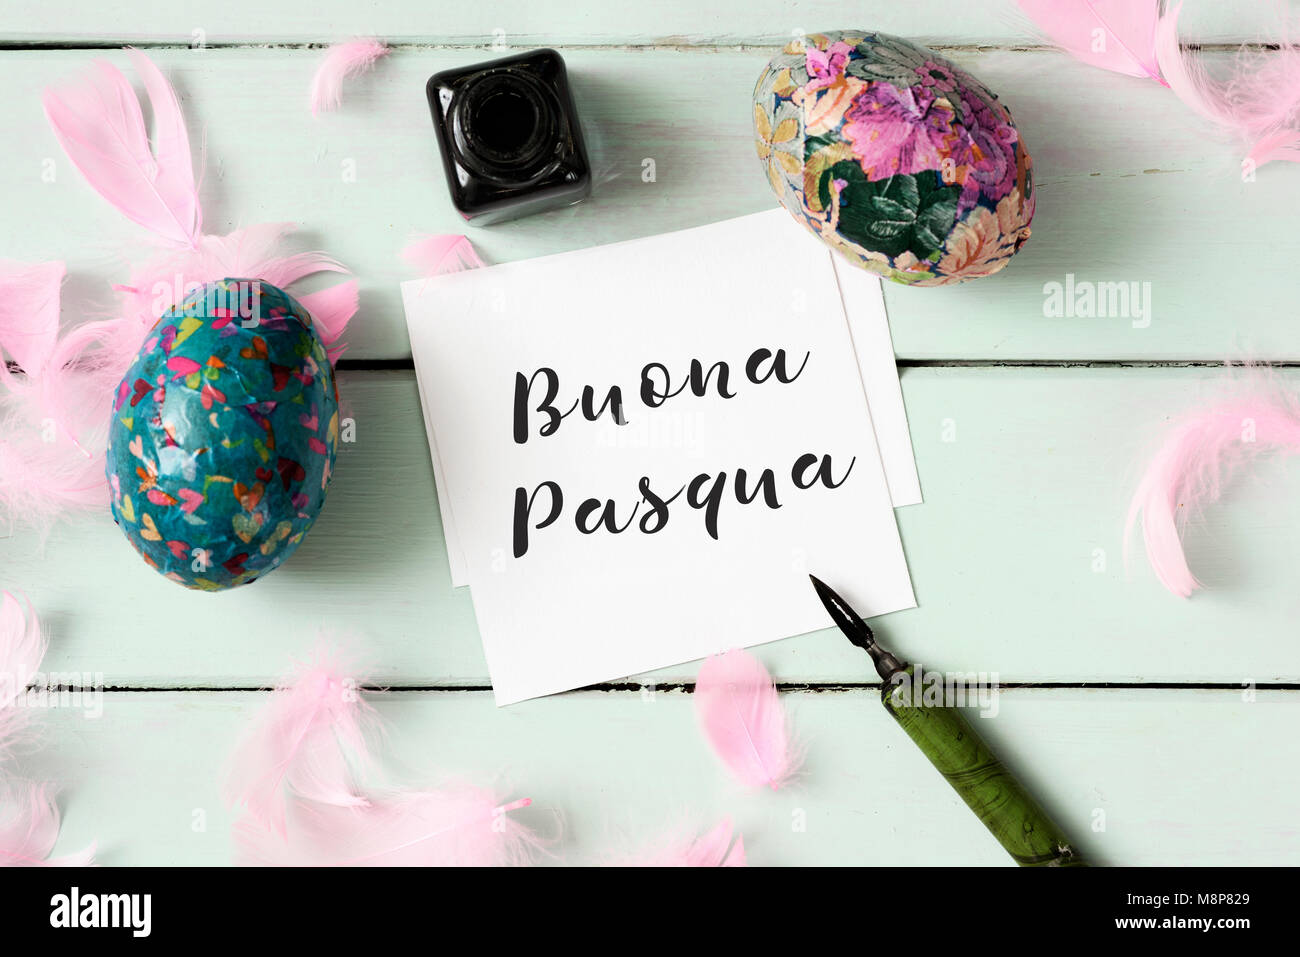 Buona Pasqua Stock Photos Buona Pasqua Stock Images Alamy